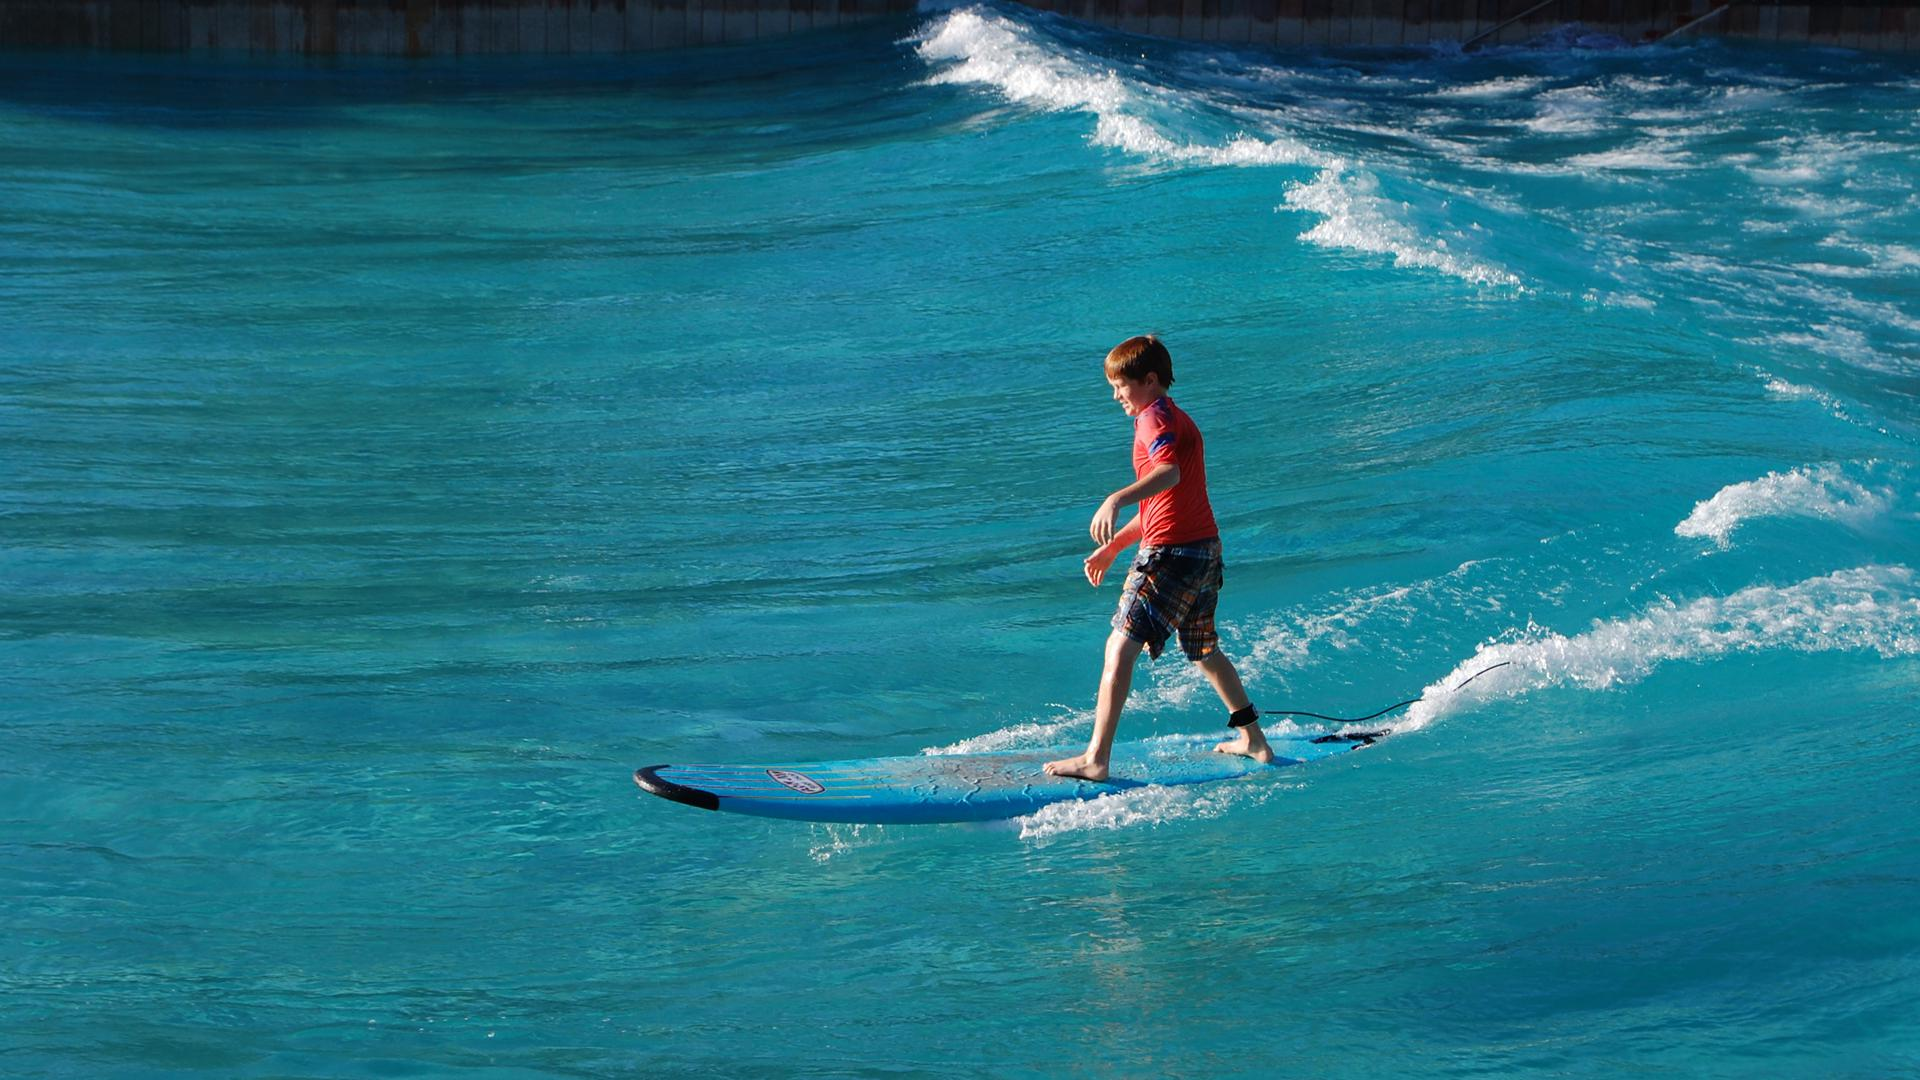 Surf Lessons - Orlando Tickets, Hotels, Packages